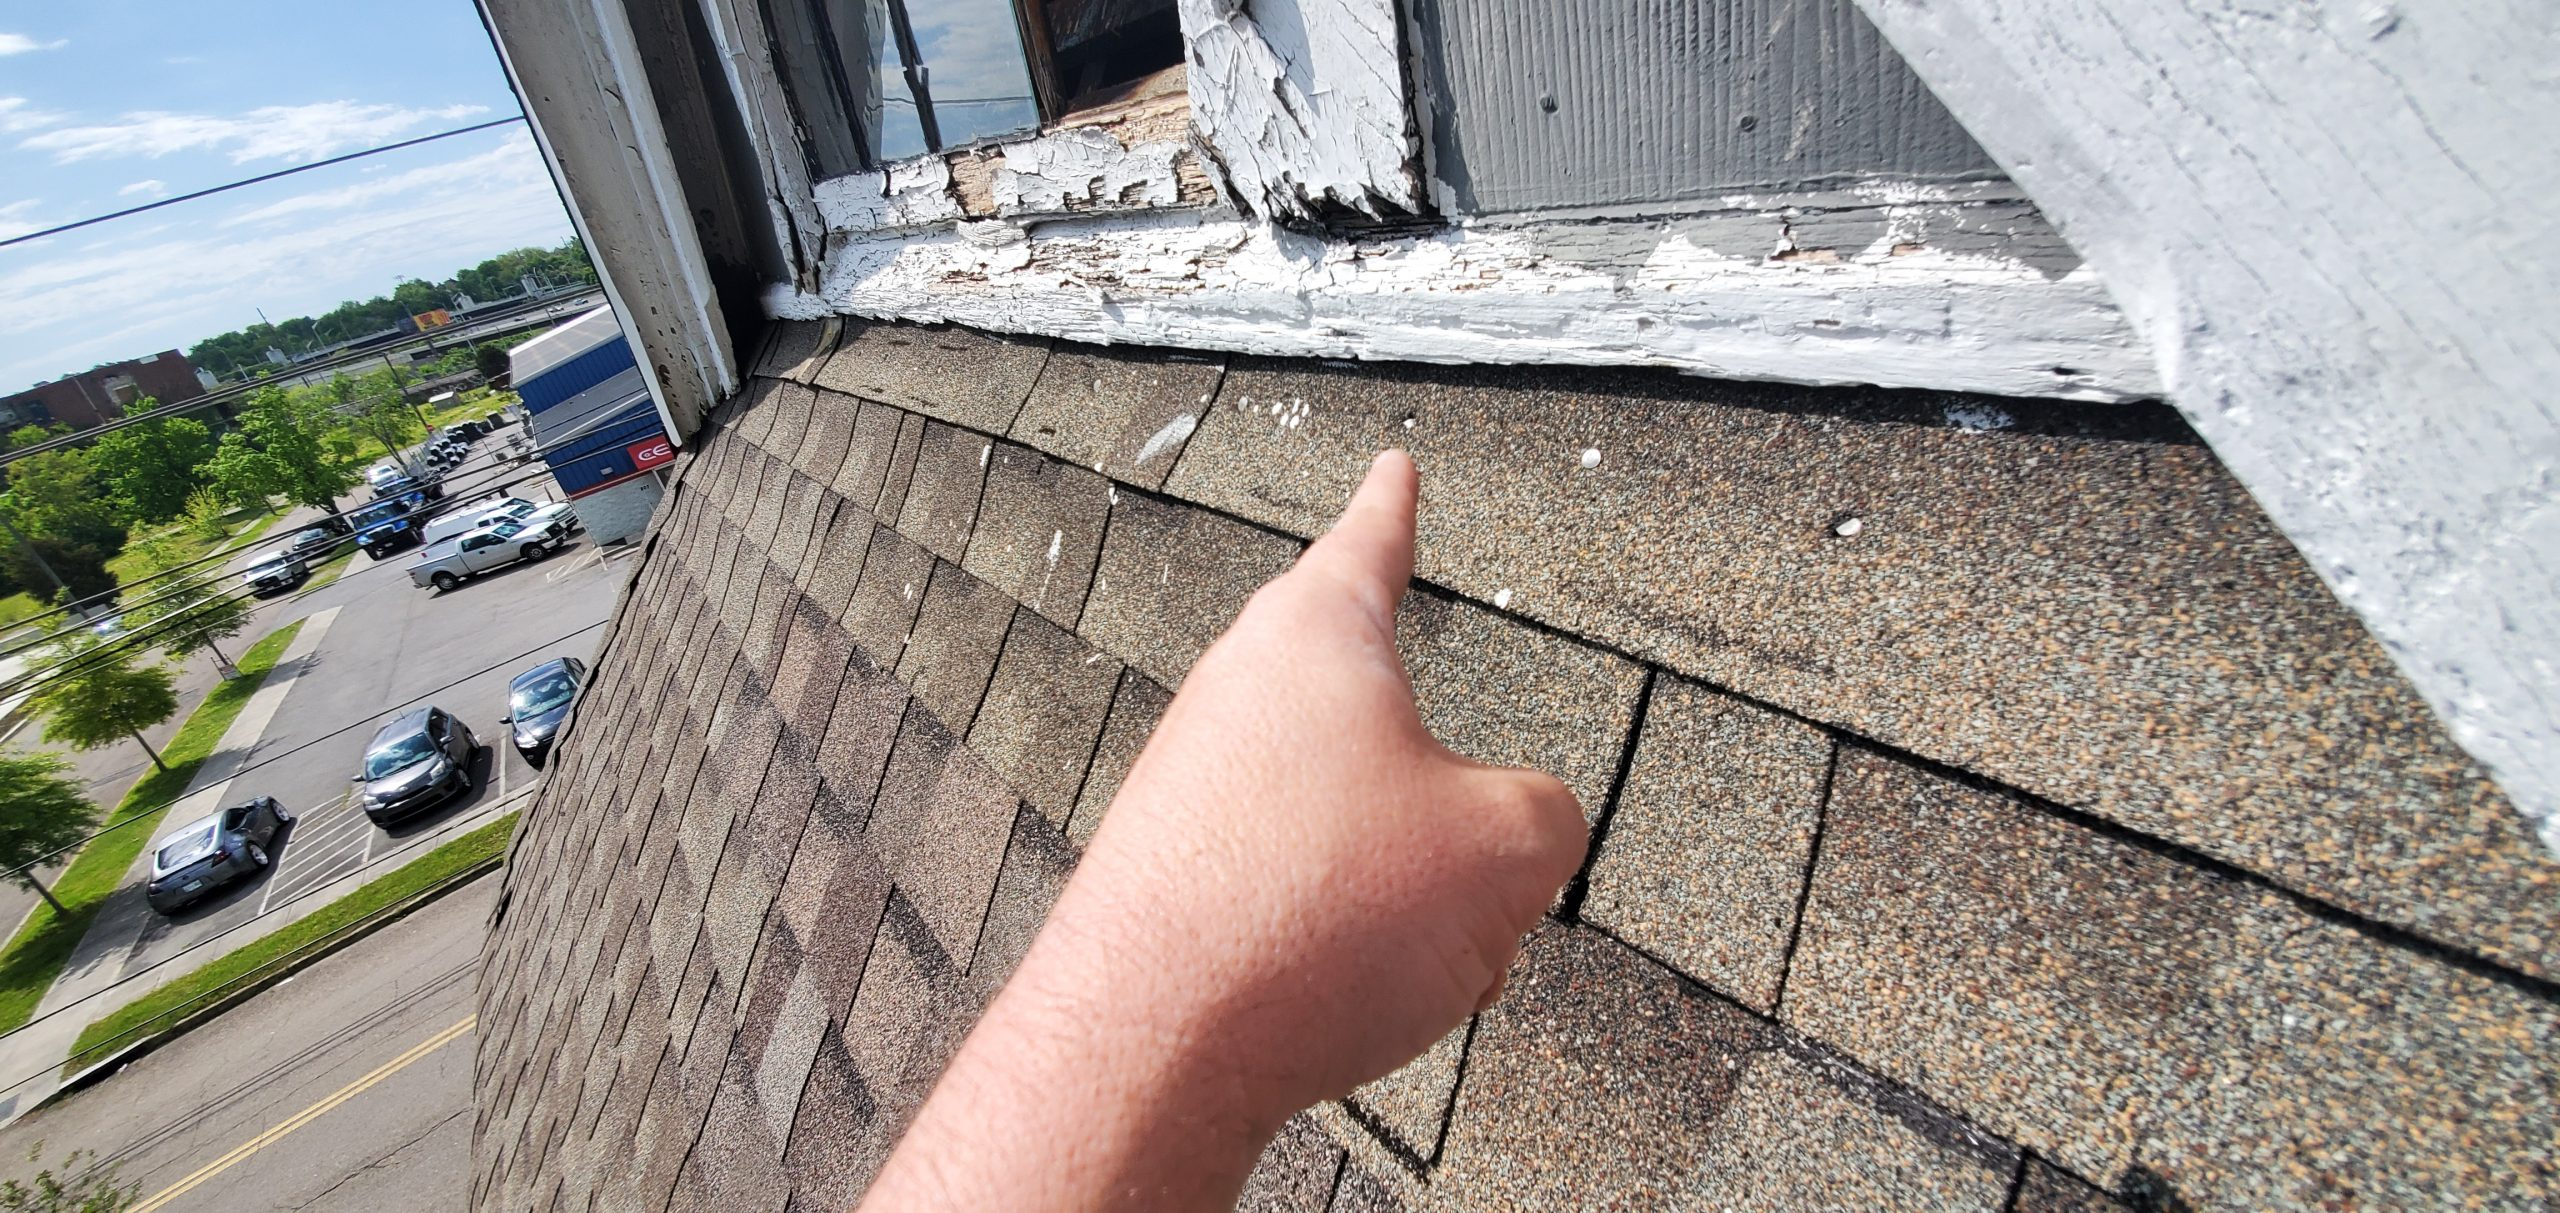 This view shows exposed nails on the shingles.